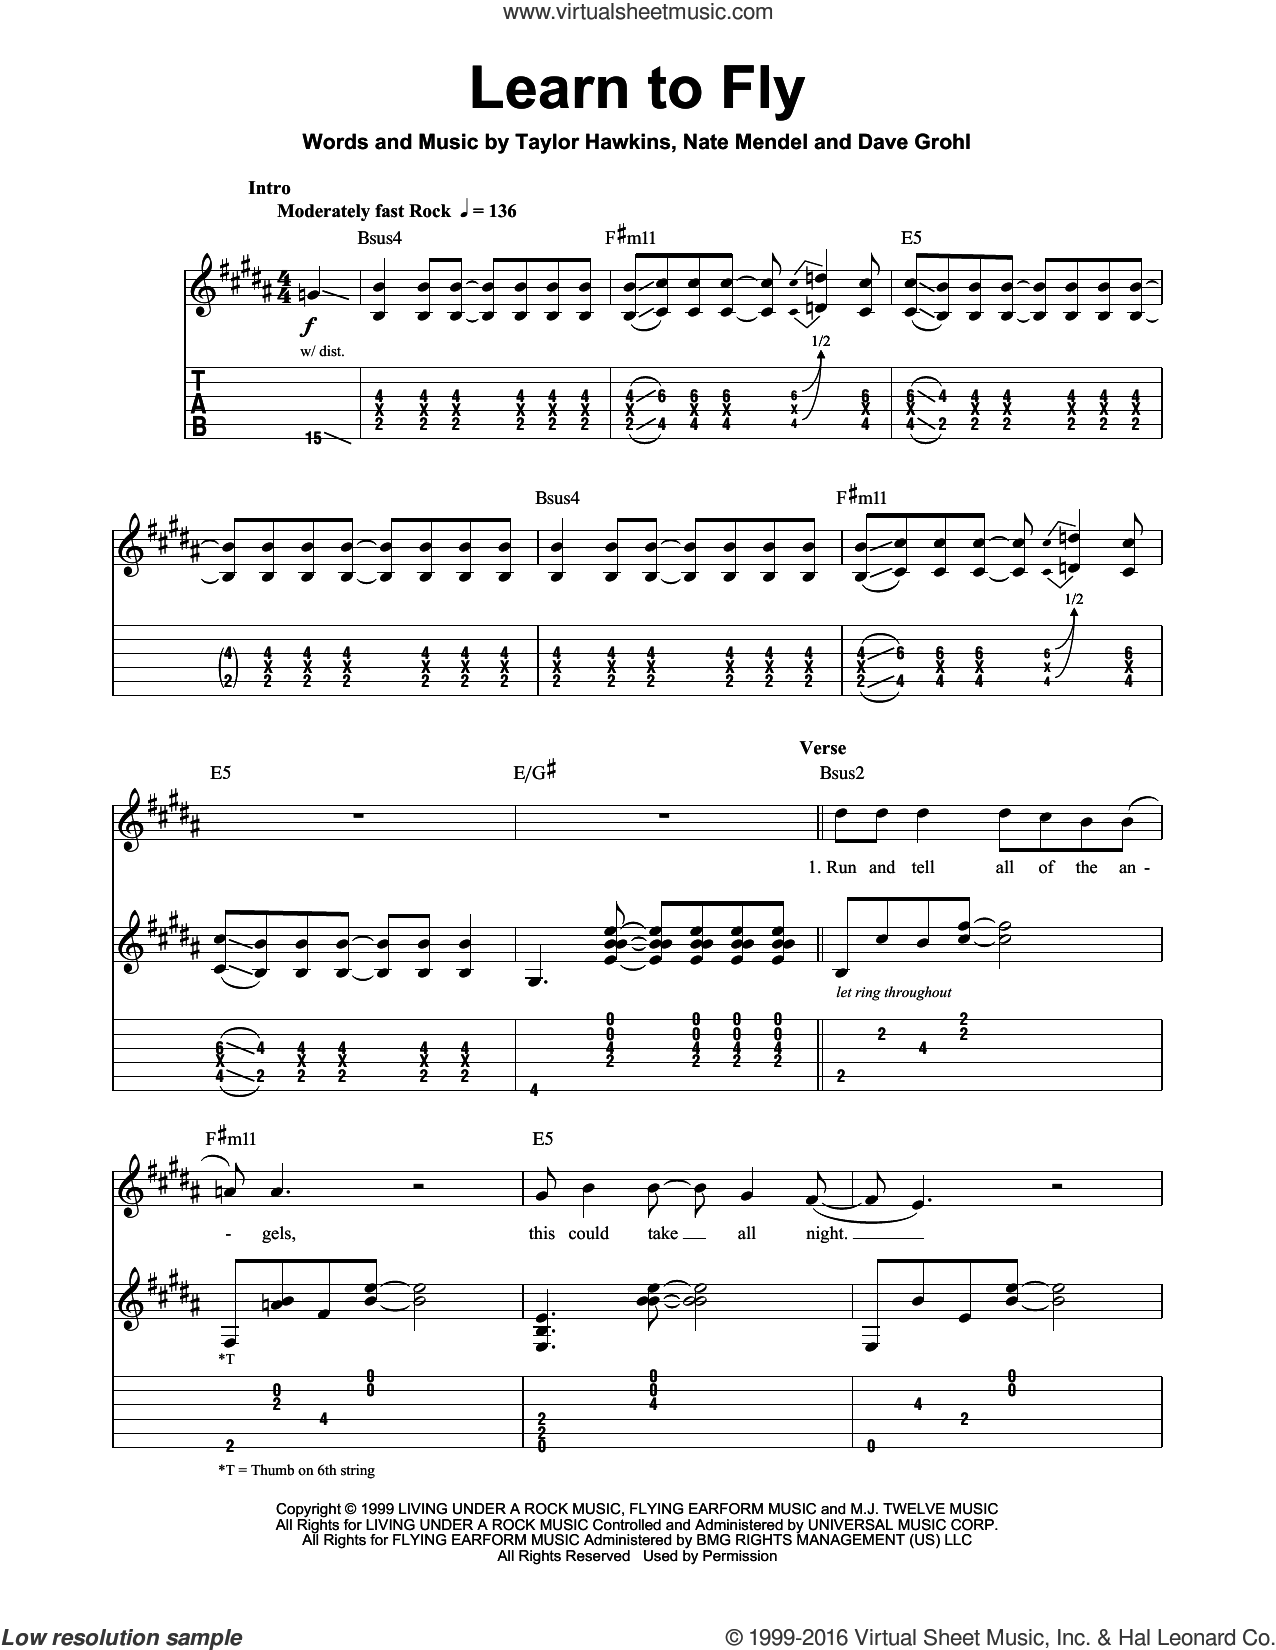 Learn To Fly sheet music for guitar (tablature, play-along) by Foo Fighters, Dave Grohl, Nate Mendel and Taylor Hawkins, intermediate skill level